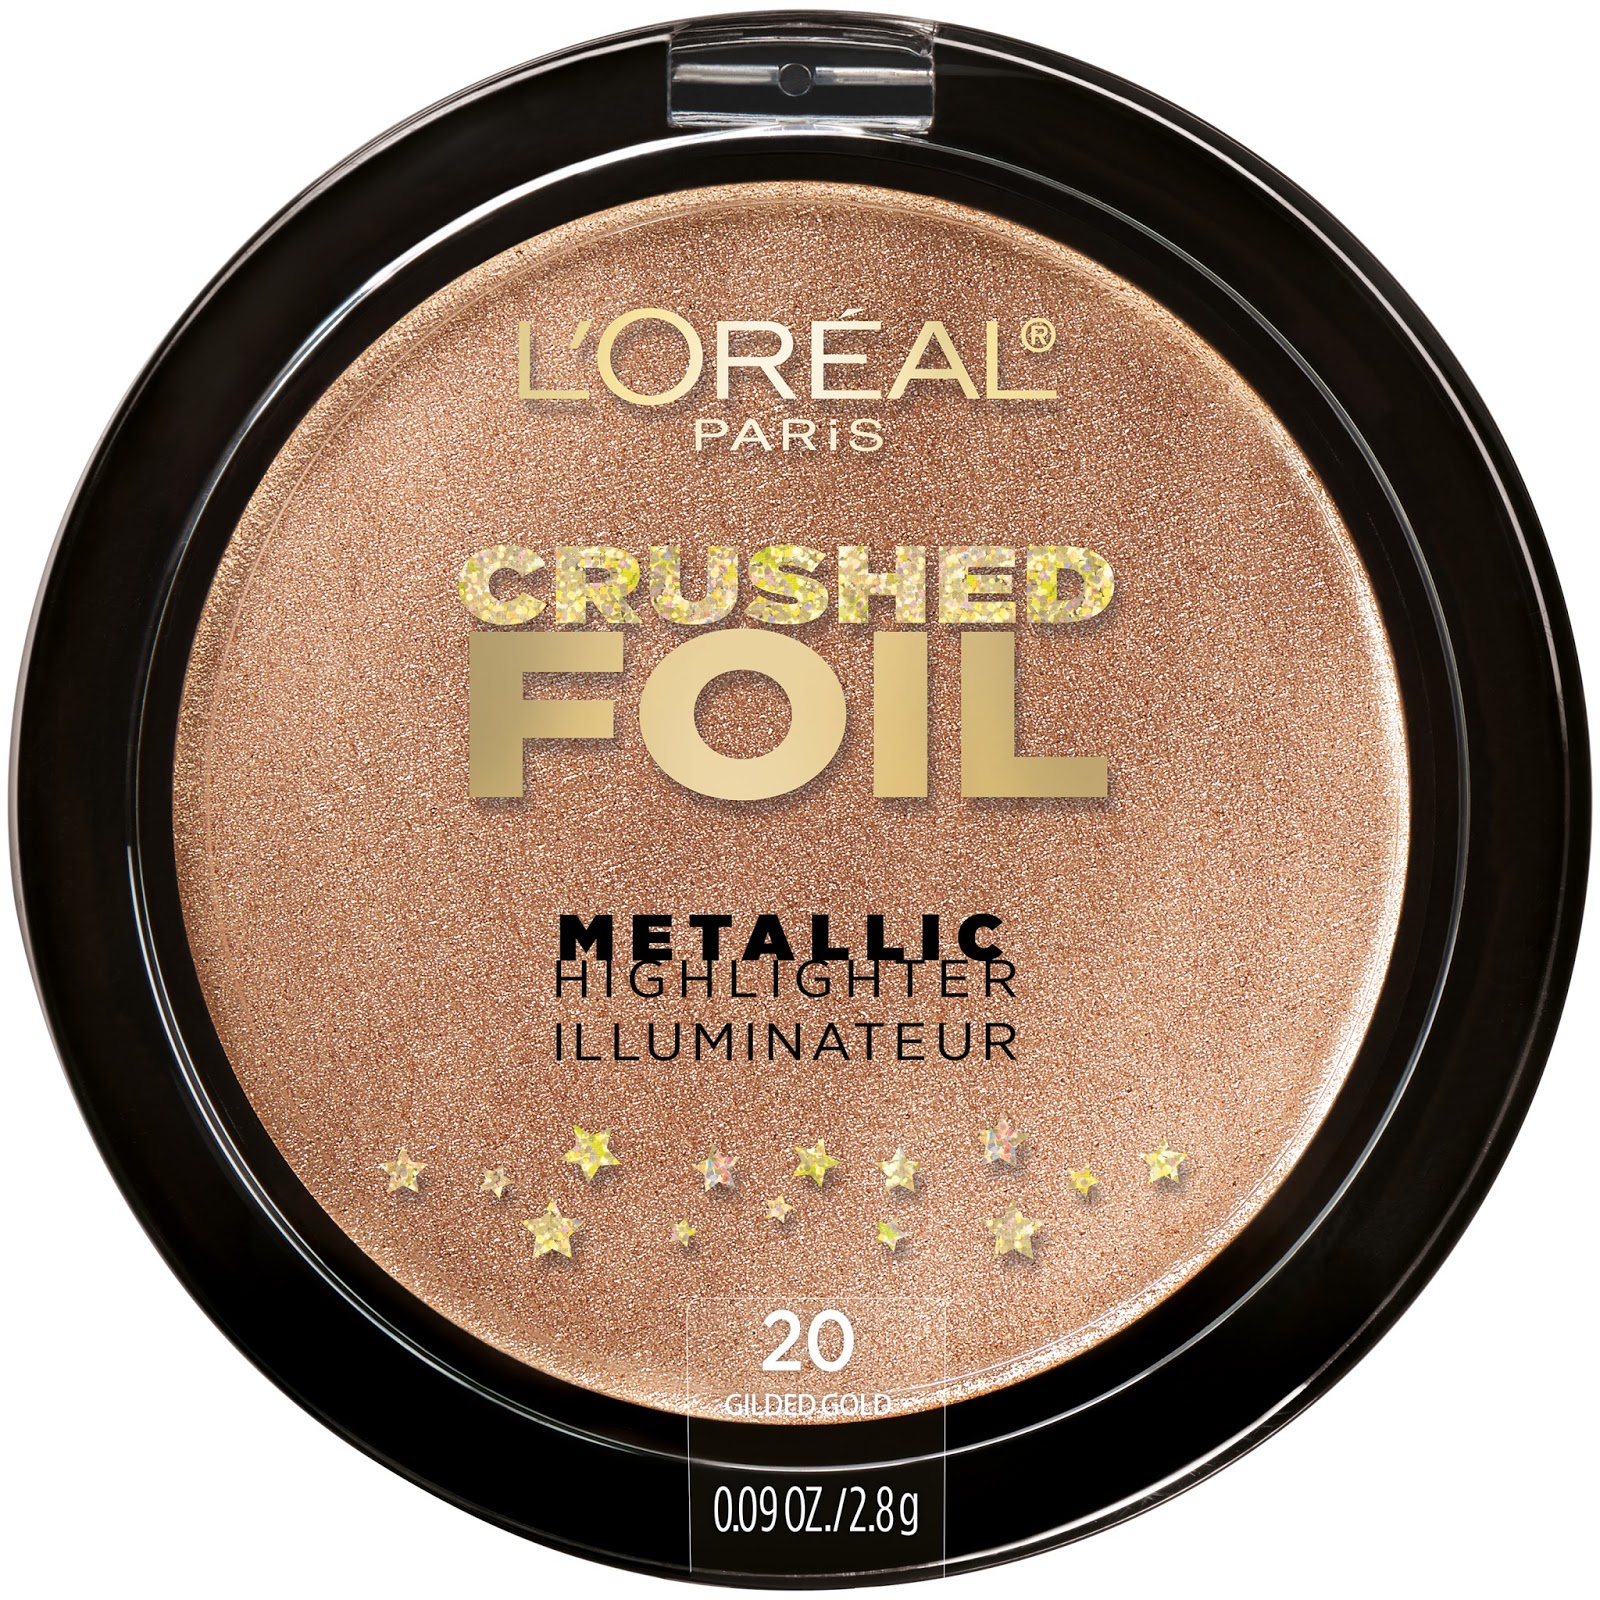 233bb89b61c L'Oréal Introduces The Crushed Foils Collection: Available ...